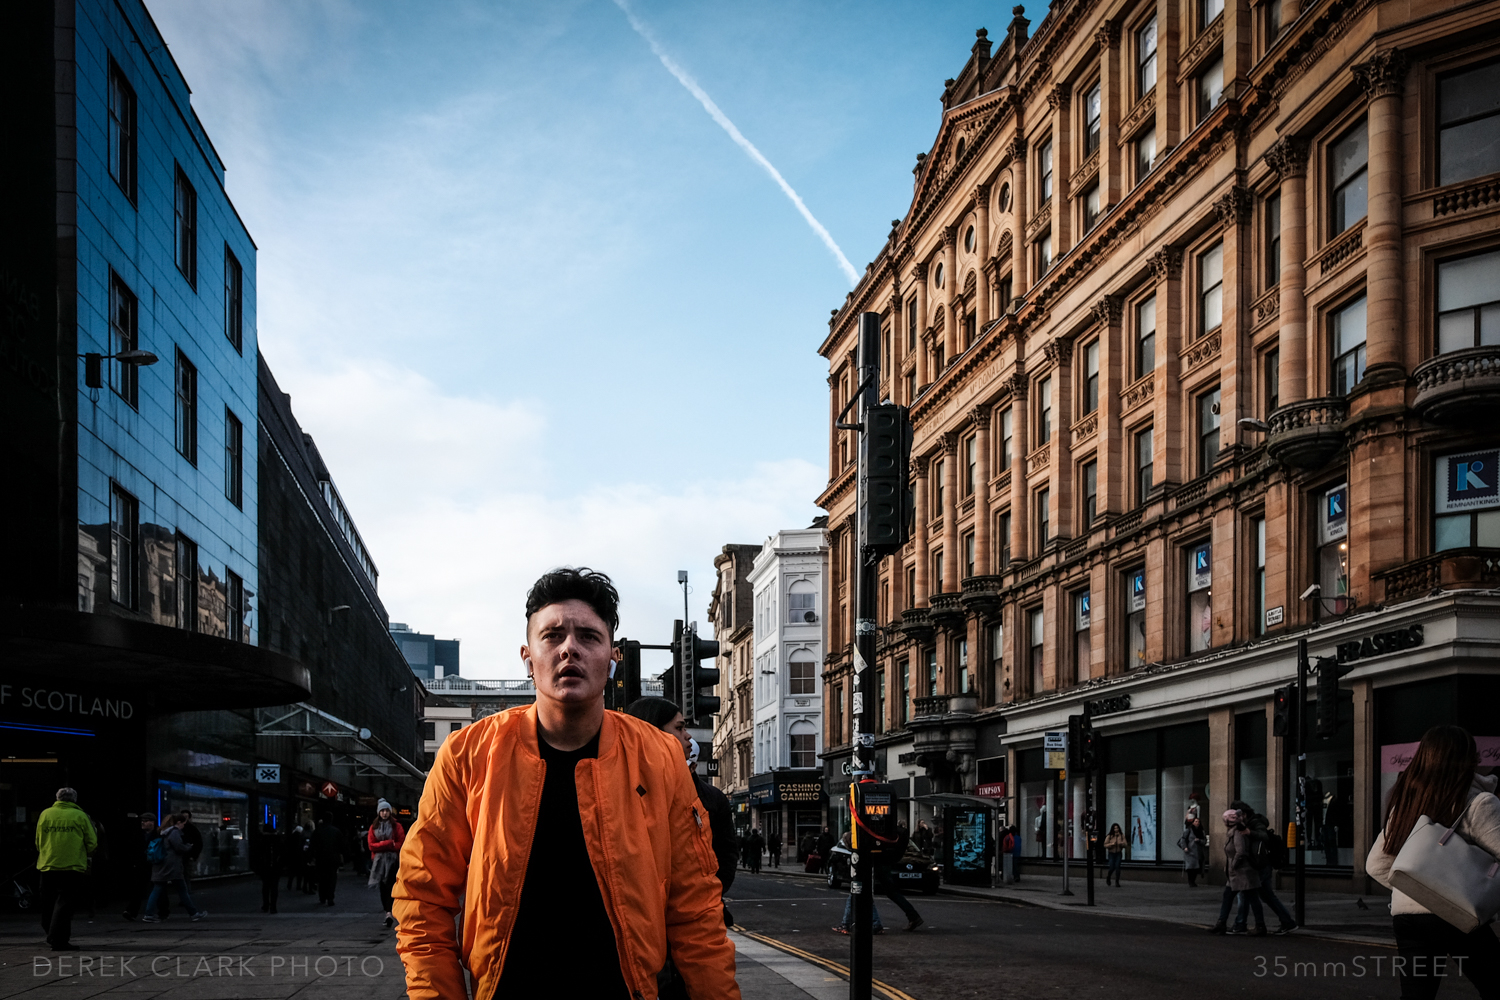 027_35mmStreet-Glasgow-Scotland-Feb-2019.jpg